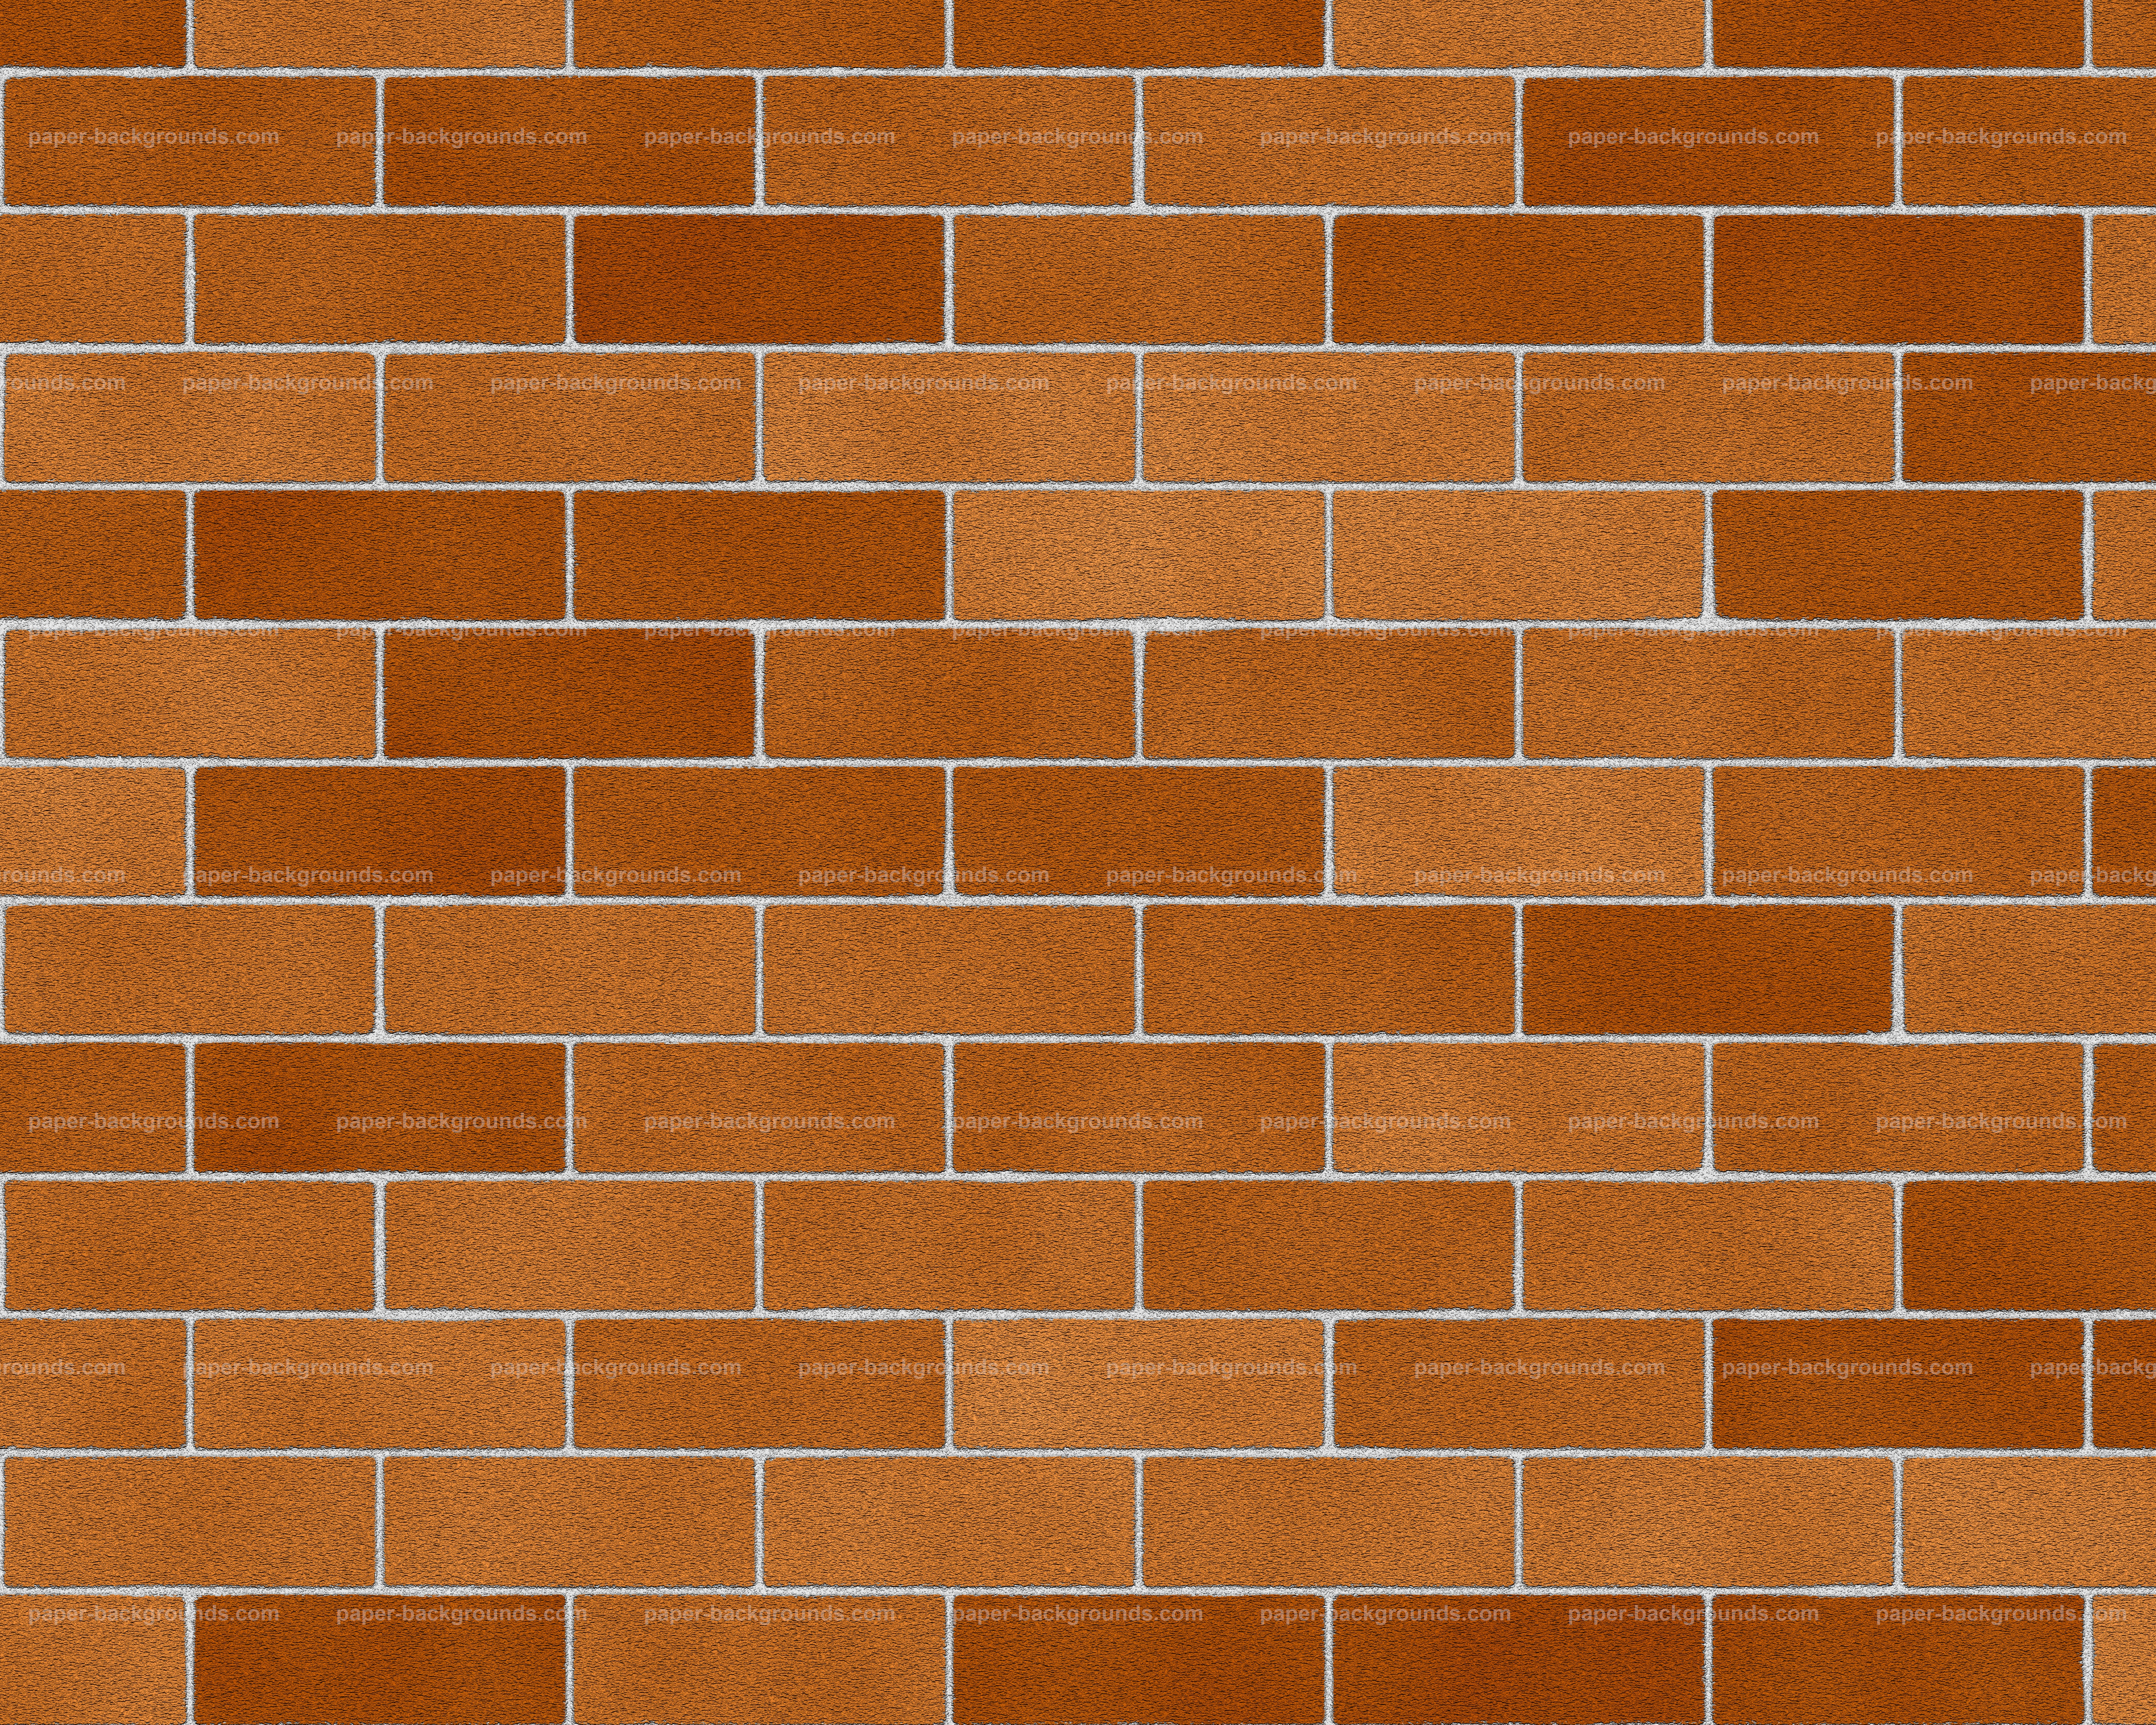 Paper Backgrounds Clean Red Brick Wall Texture  : clean red brick wall texture background from paper-backgrounds.com size 6000 x 4800 jpeg 20479kB